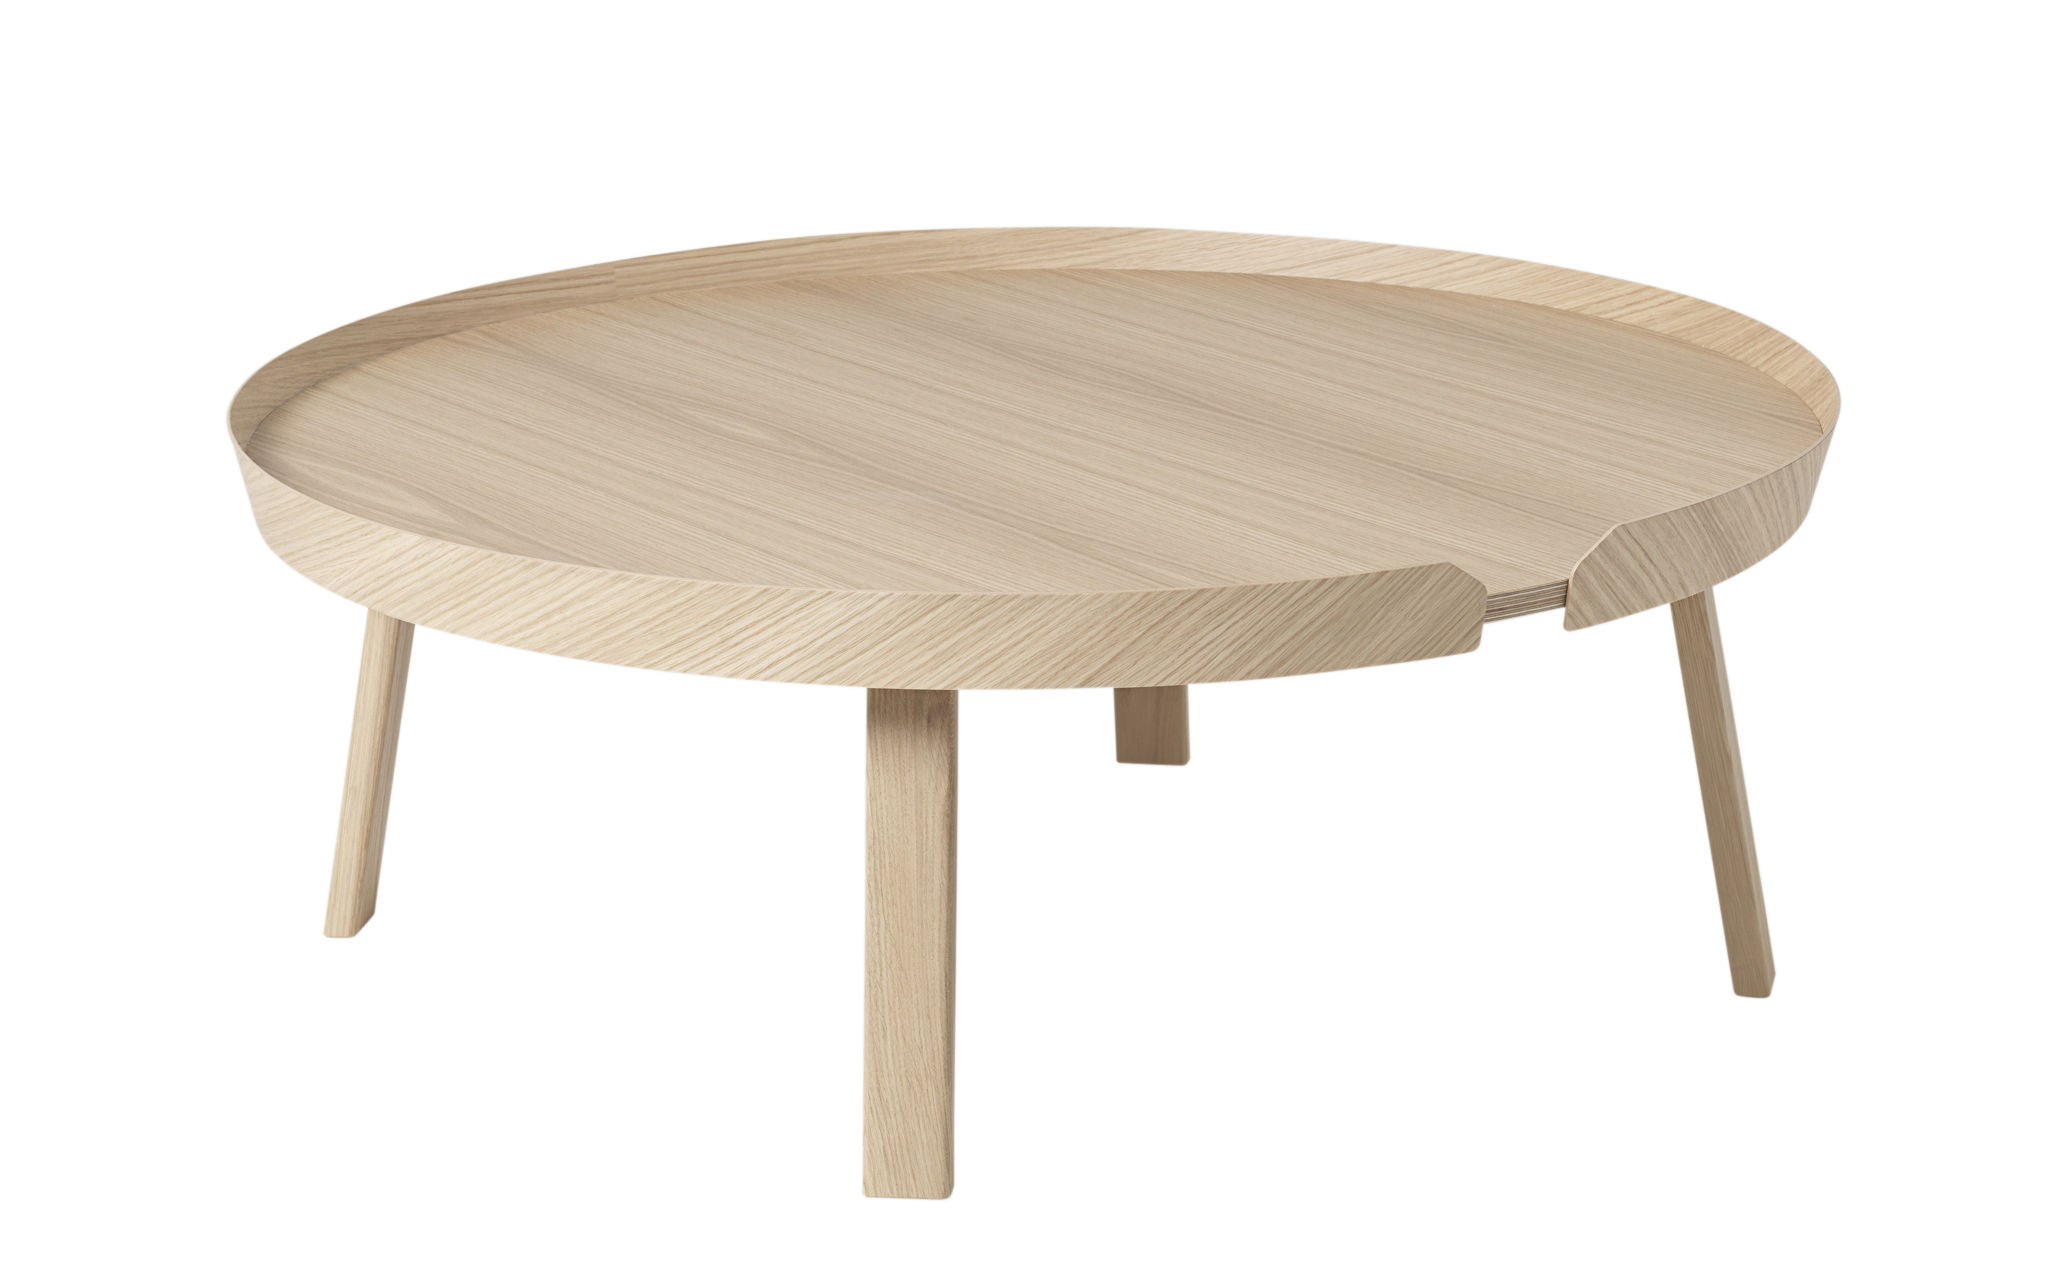 Furniture - Coffee Tables - Around XL Coffee table - Ø 95 x H 36 cm by Muuto - Natural oak - Tinted ashwood